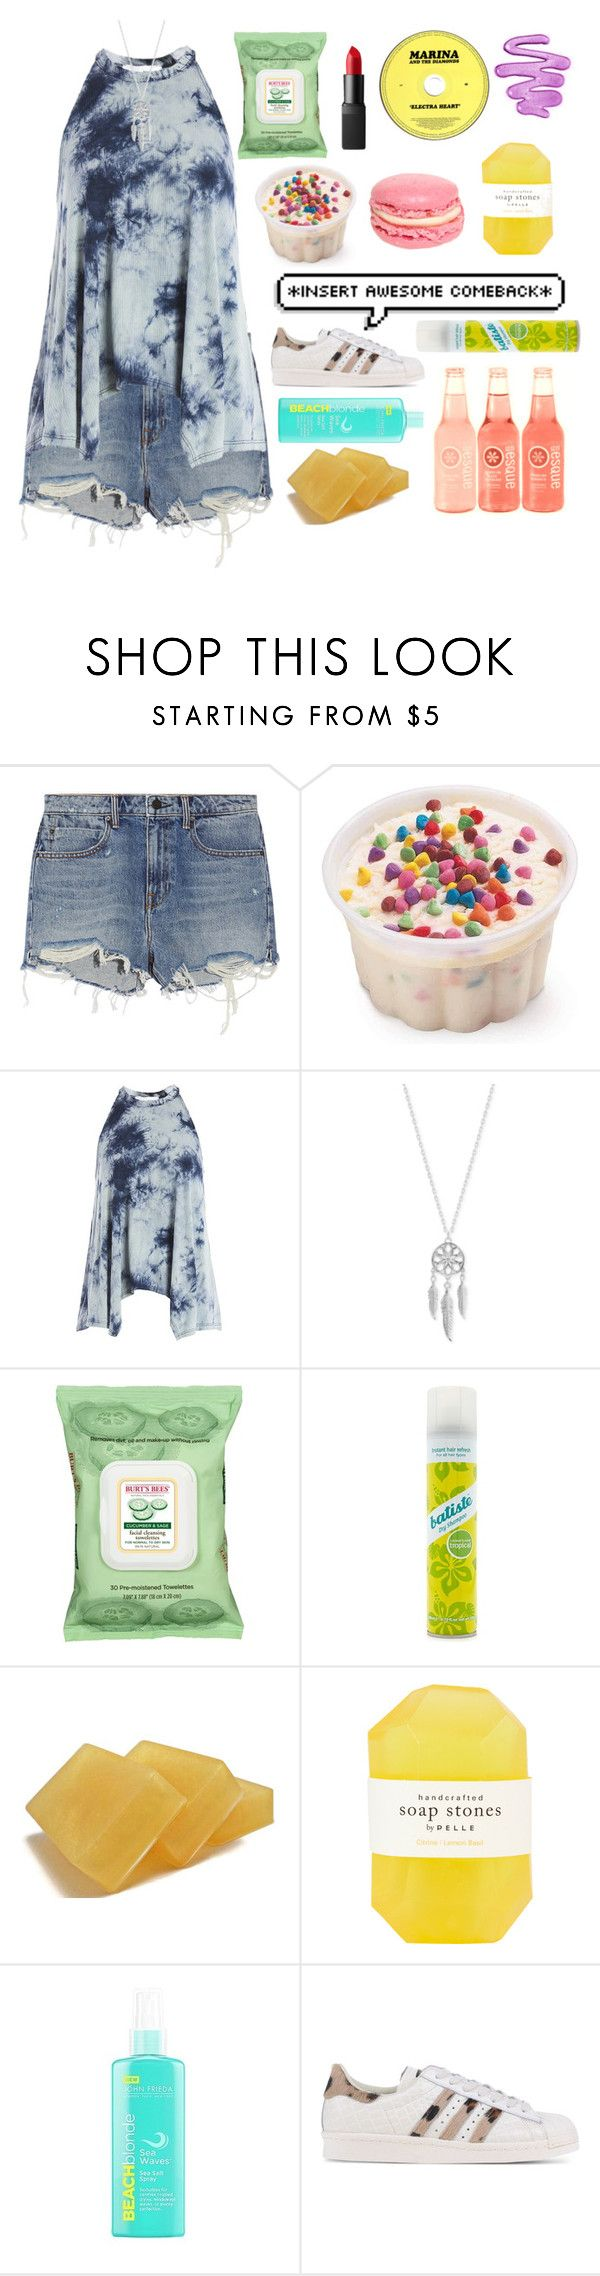 ""\Primadonna Girl Yeah/All I ever wanted was the World"" by sugarplumfairy98 ❤ liked on Polyvore featuring Alexander Wang, Sans Souci, Lucky Brand, Burt's Bees, Forever 21, Pelle, adidas Originals, NARS Cosmetics and spf98fashion600|2276|?|85ff44ed37a5a43f2bca5a57aa1f4049|False|UNLIKELY|0.3385043144226074